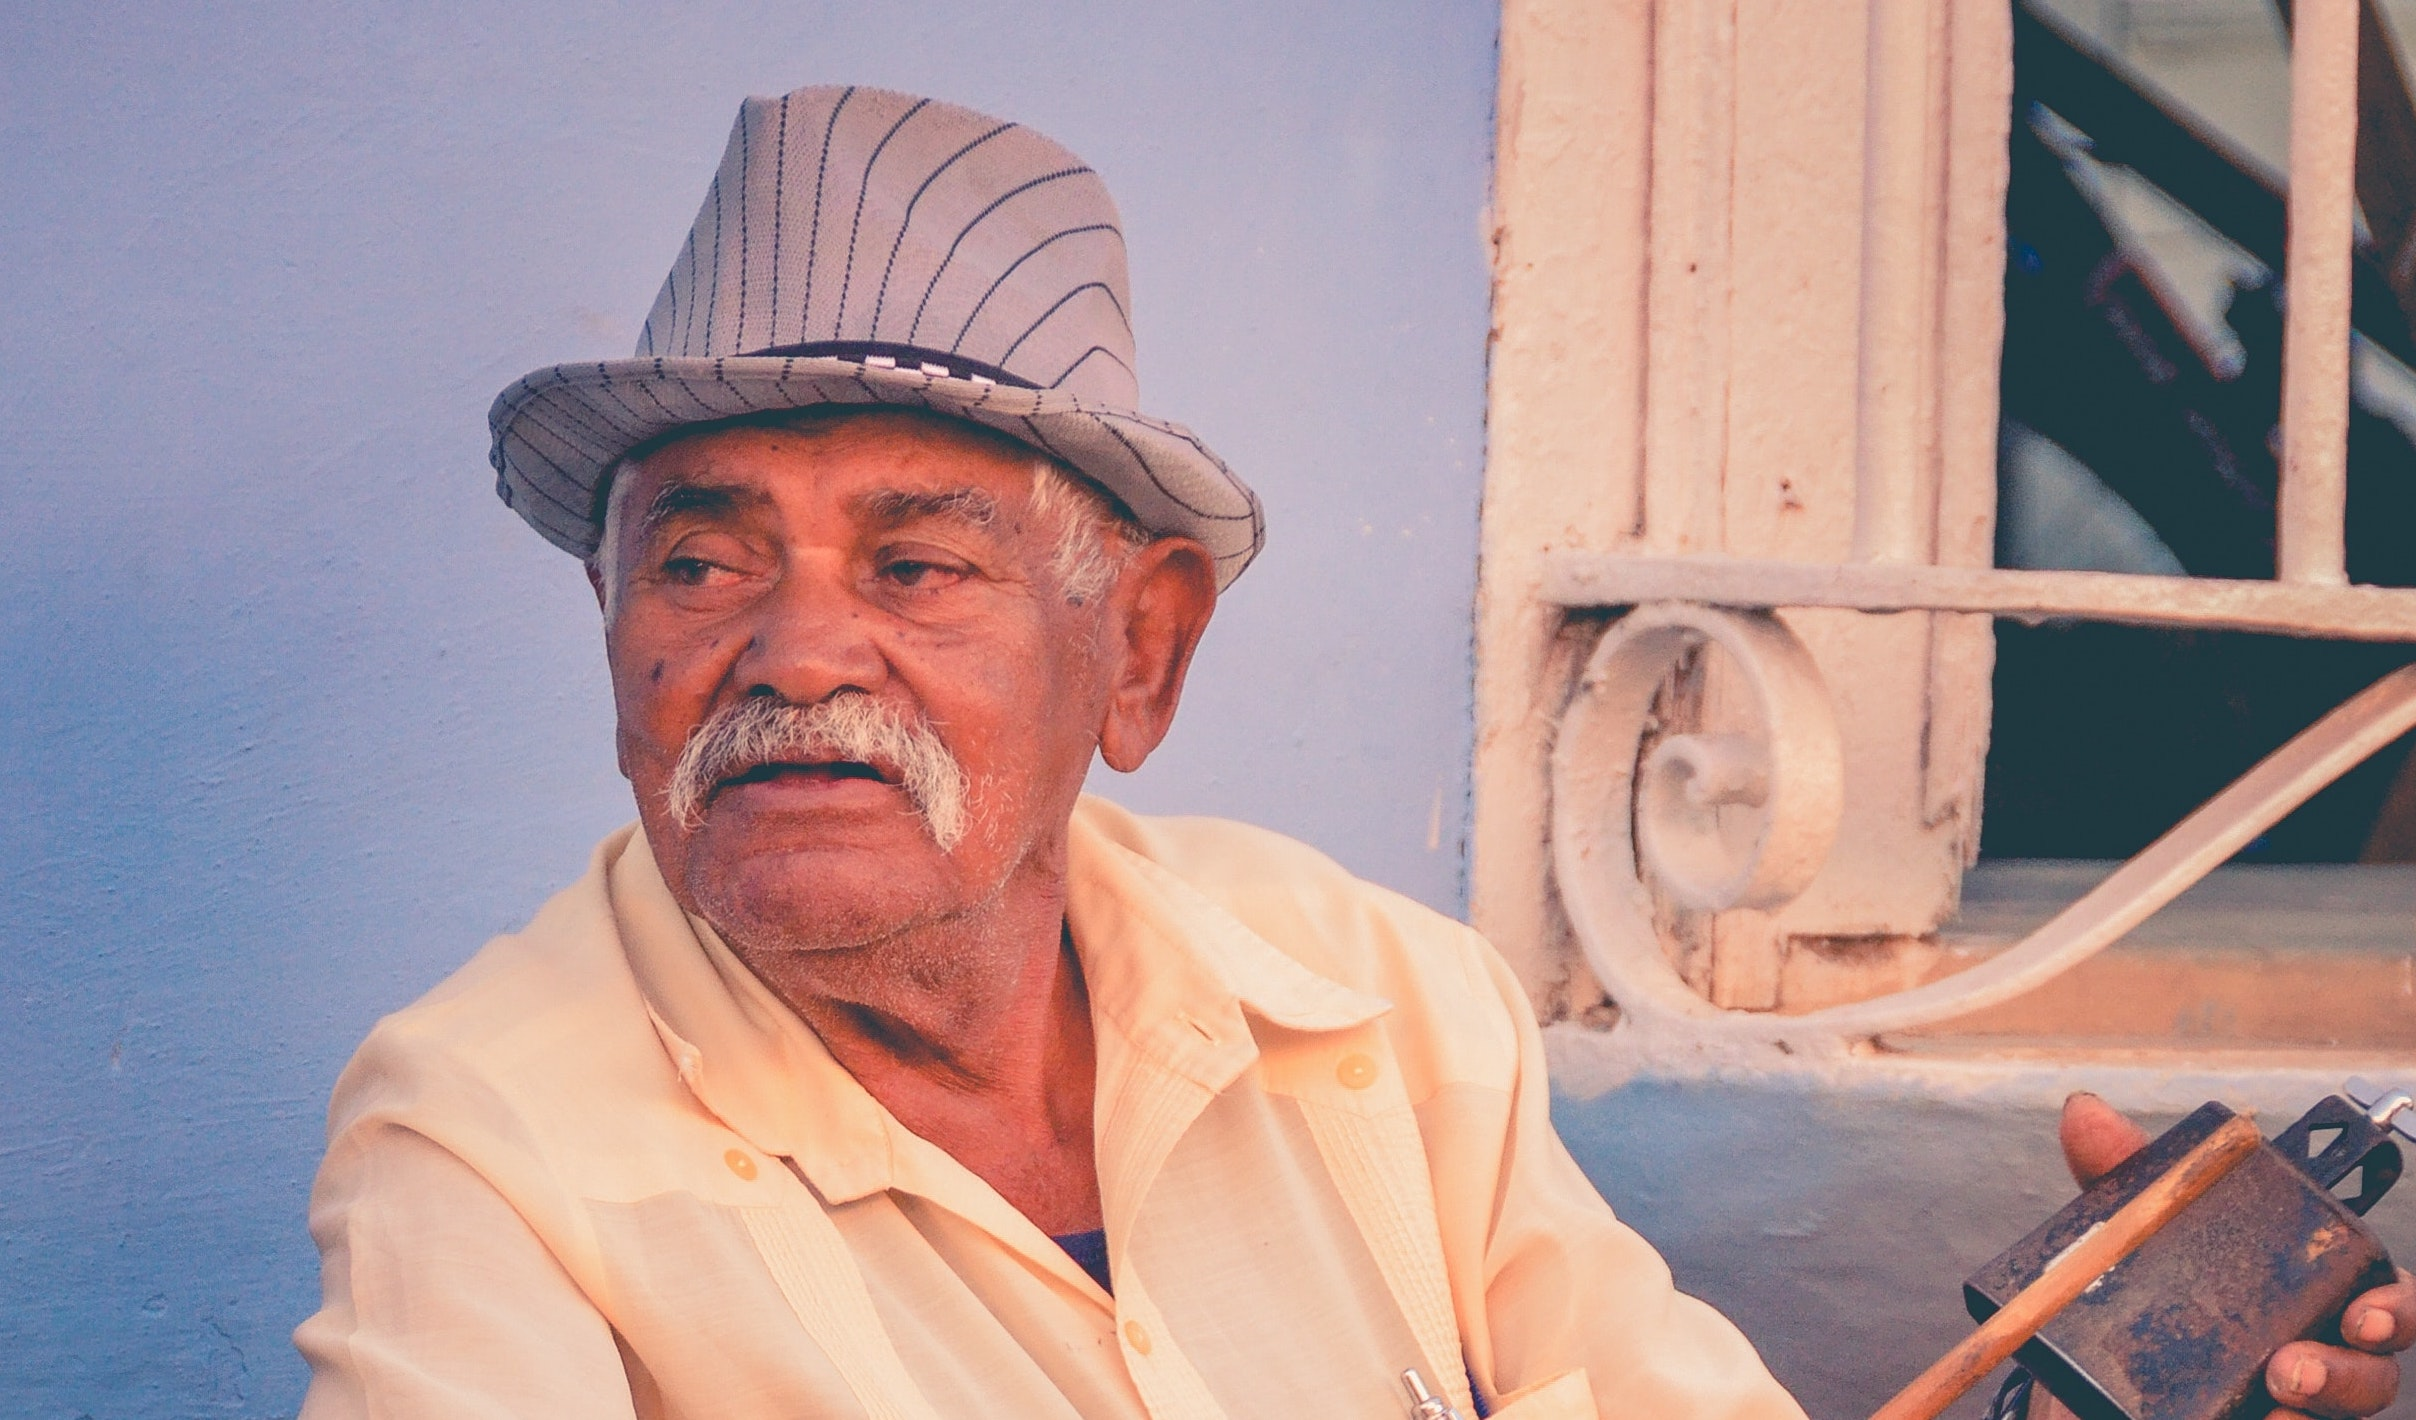 adult-cuba-elderly-1845848 copy.jpg